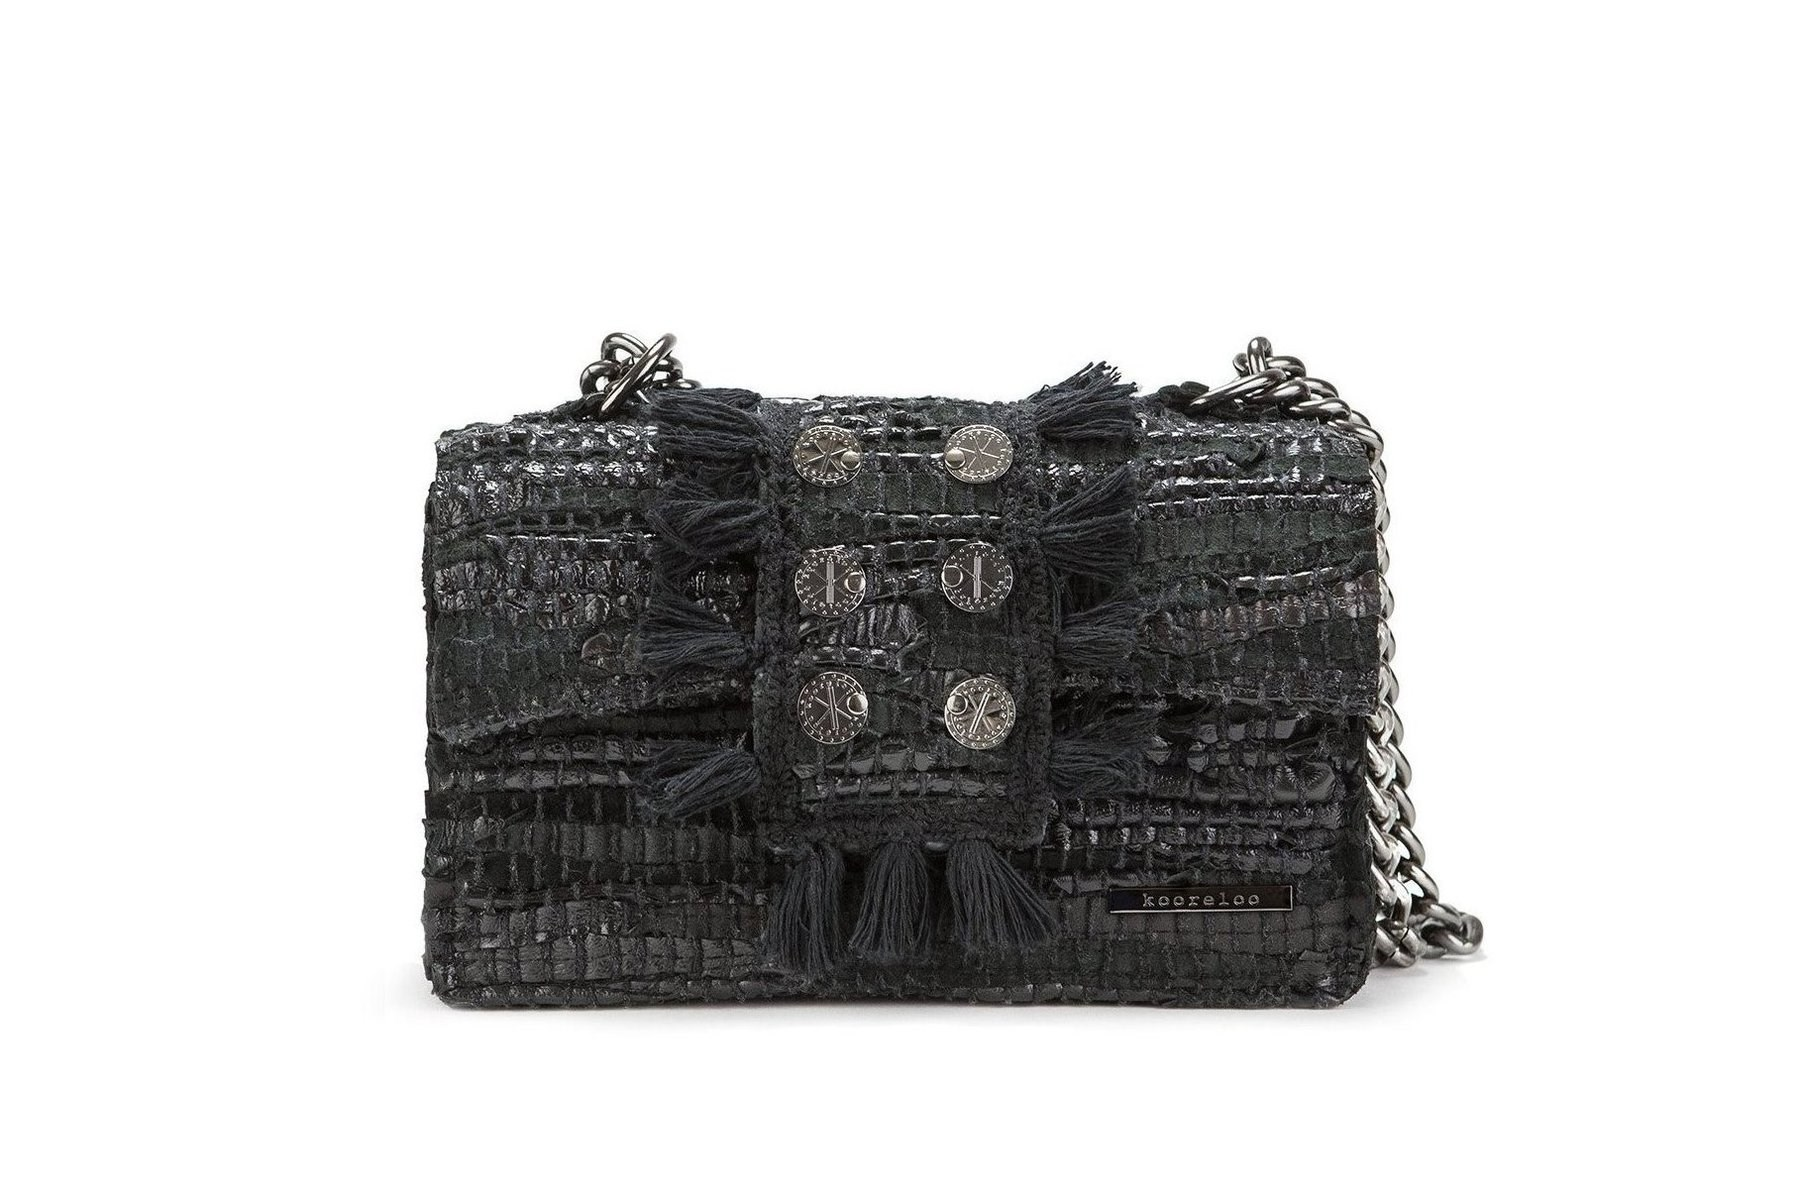 KOORELOO - NEW YORKER - SOHO - BAG - BLACK